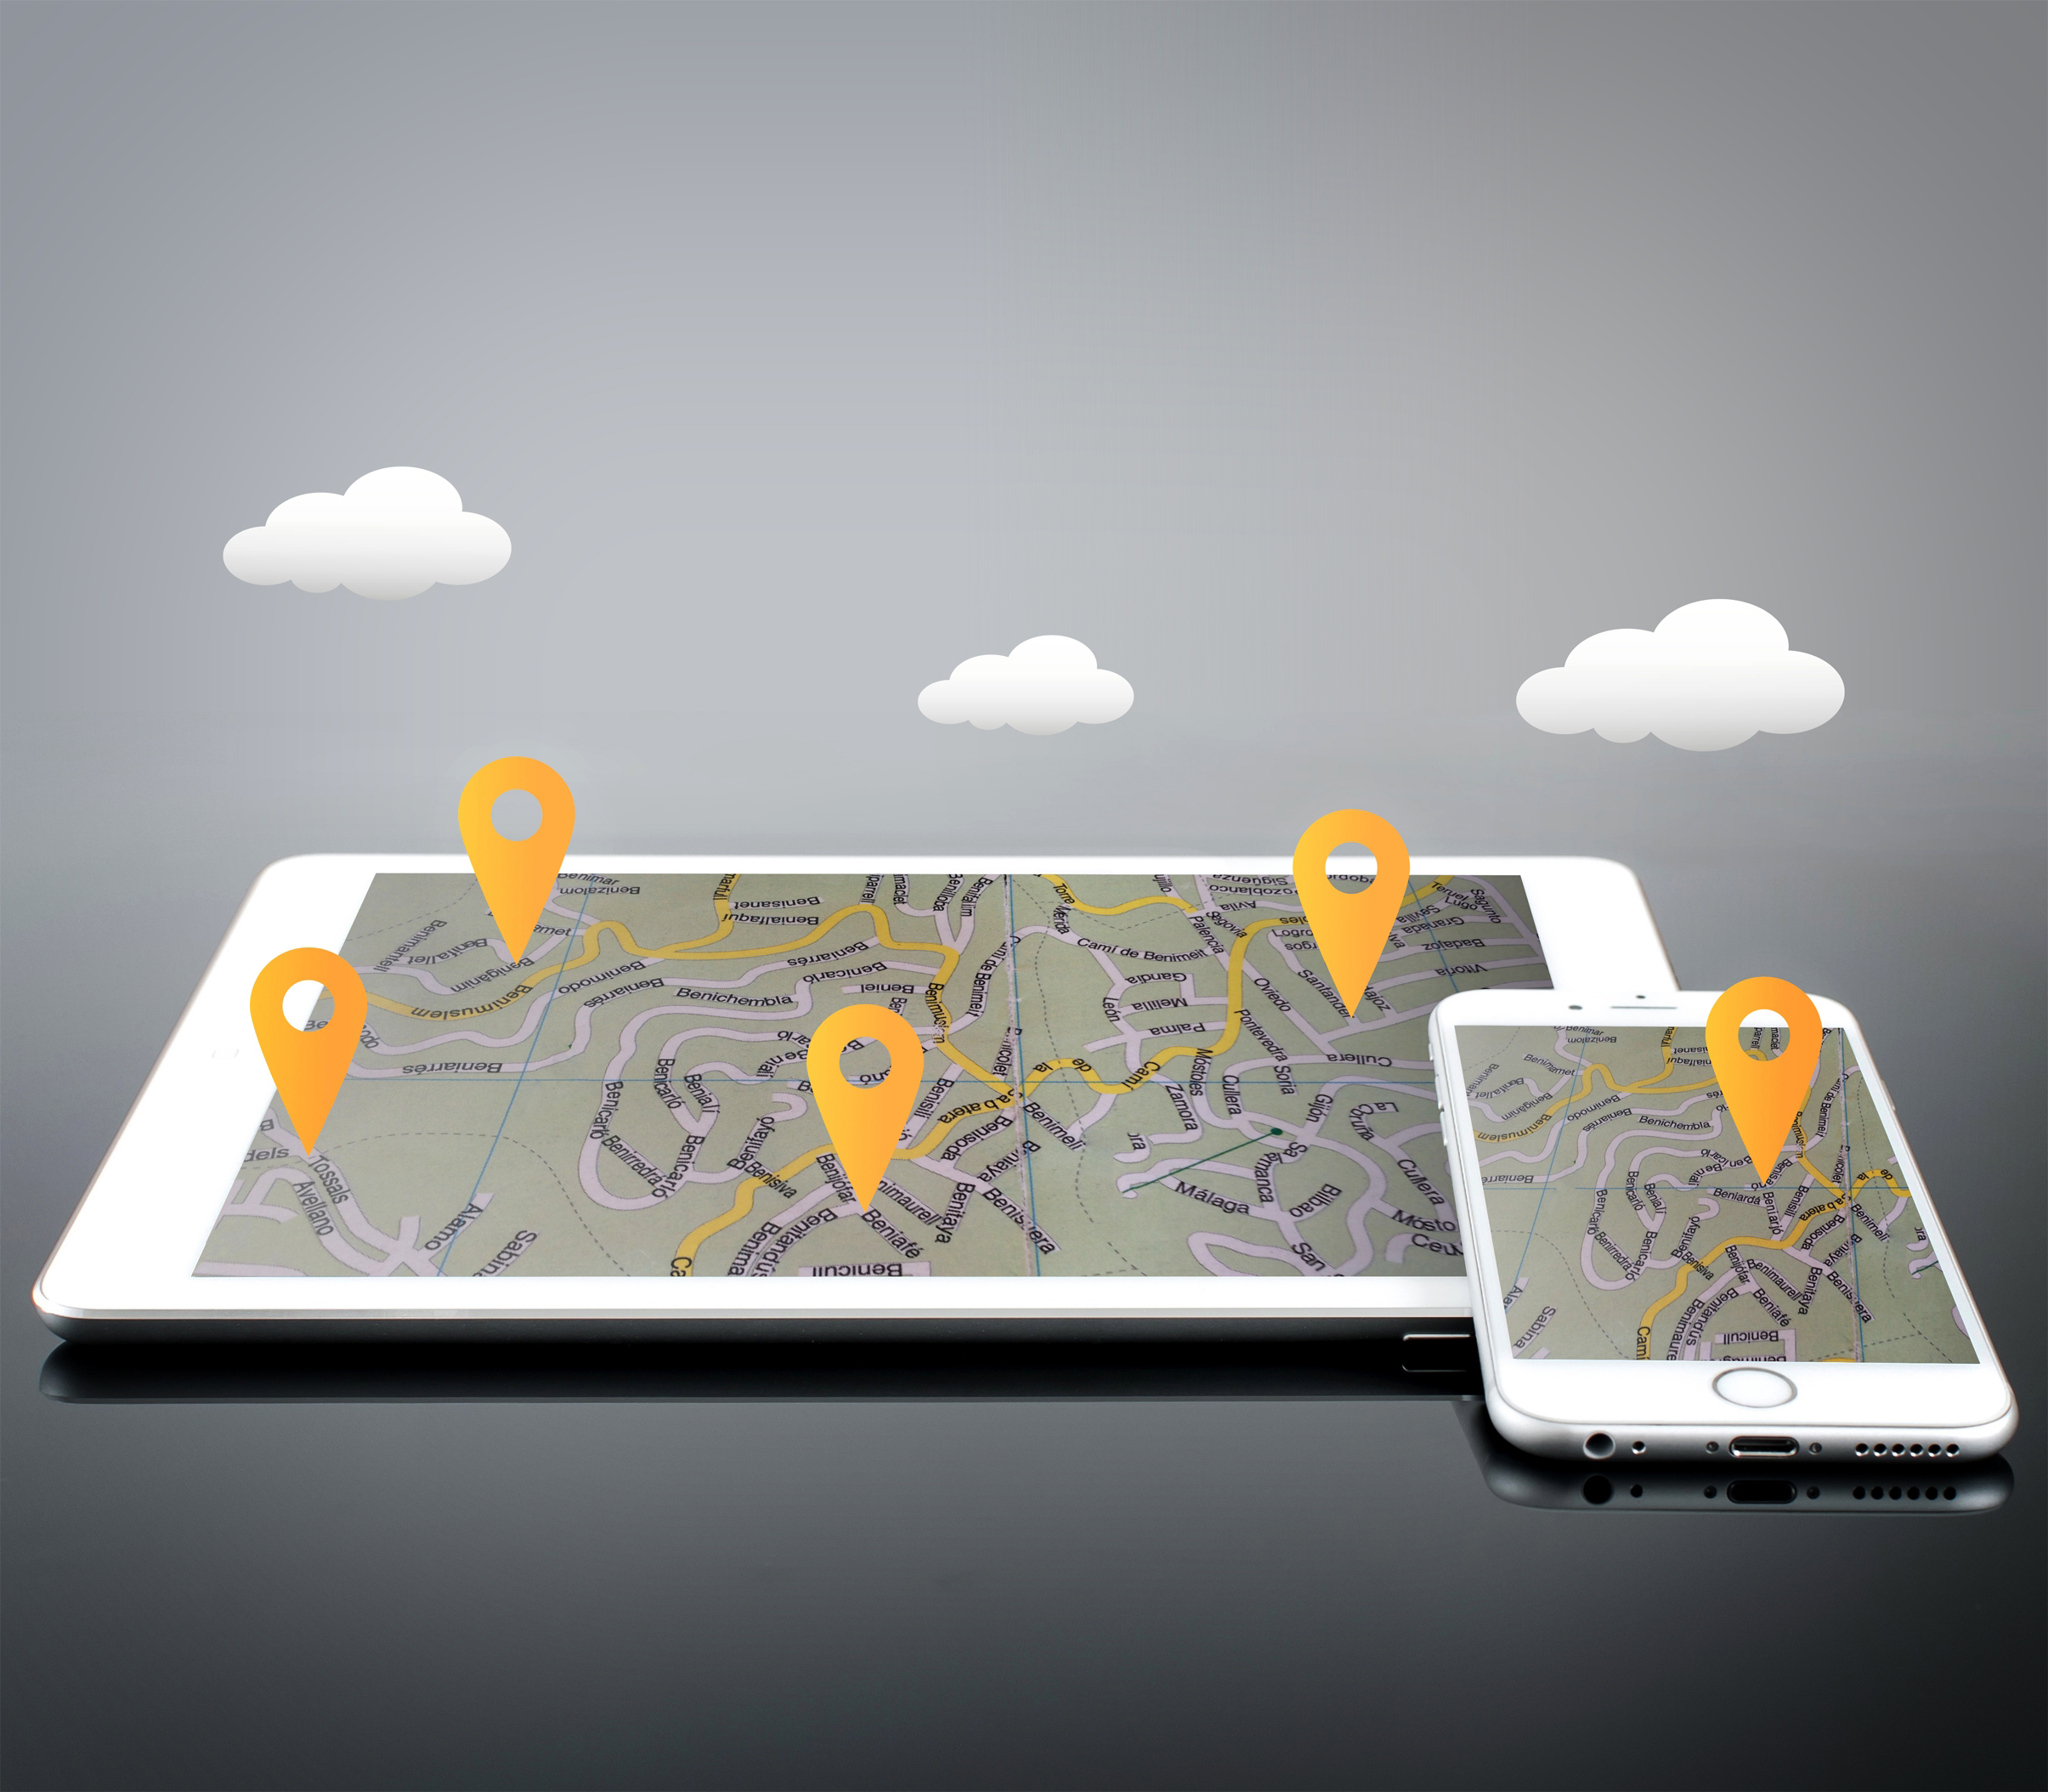 Location Markers on Devices - GPS and Navigation, 3d, Position, Screen, Satellite, HQ Photo